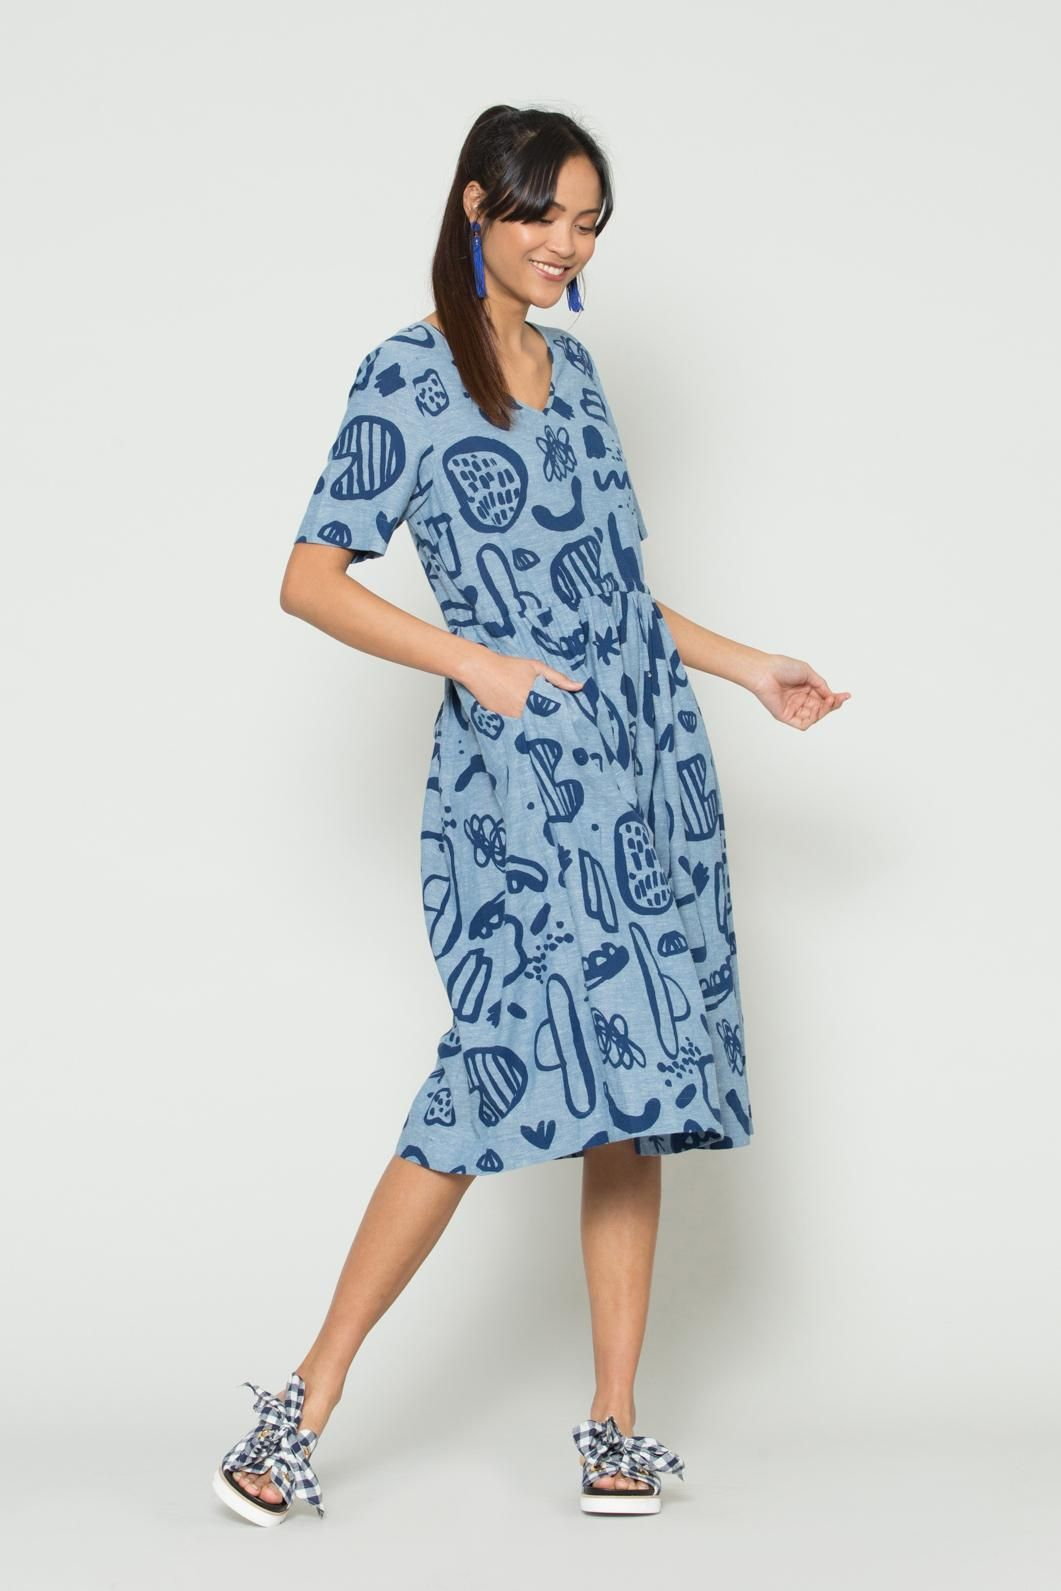 a96adc6c36 Size 12 Gorman Online    Big Sur Chambray Dress - Dresses - Clothing - Shop